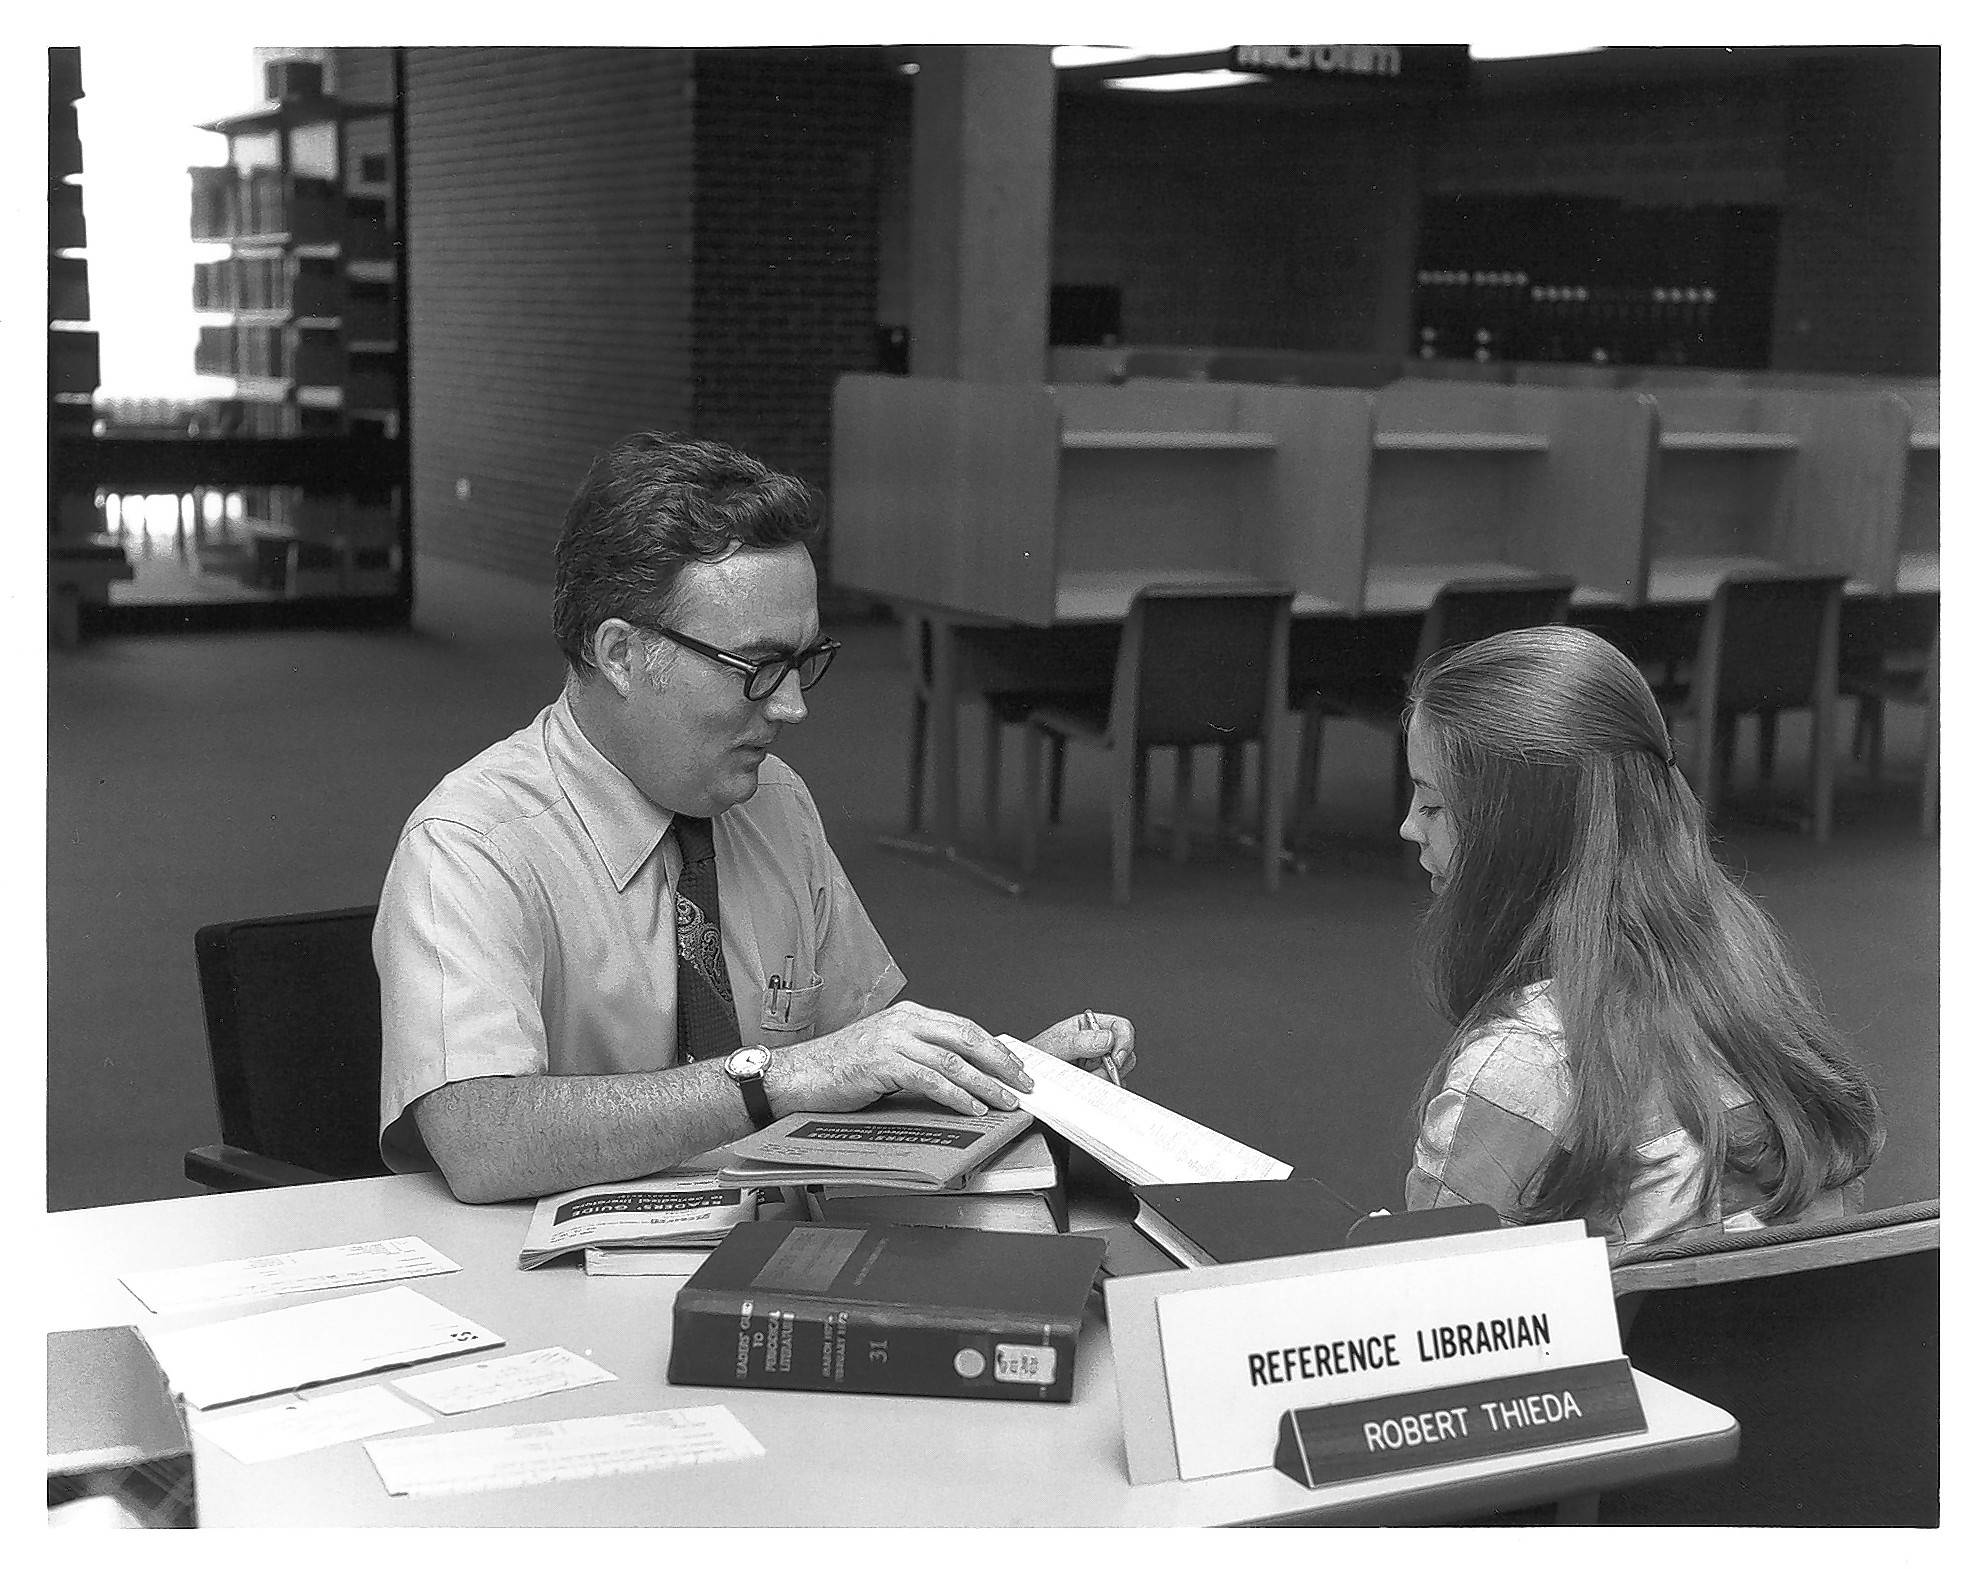 Robert Thieda, one of the original faculty members at Harper College, talks with a student in the early days of the college library.